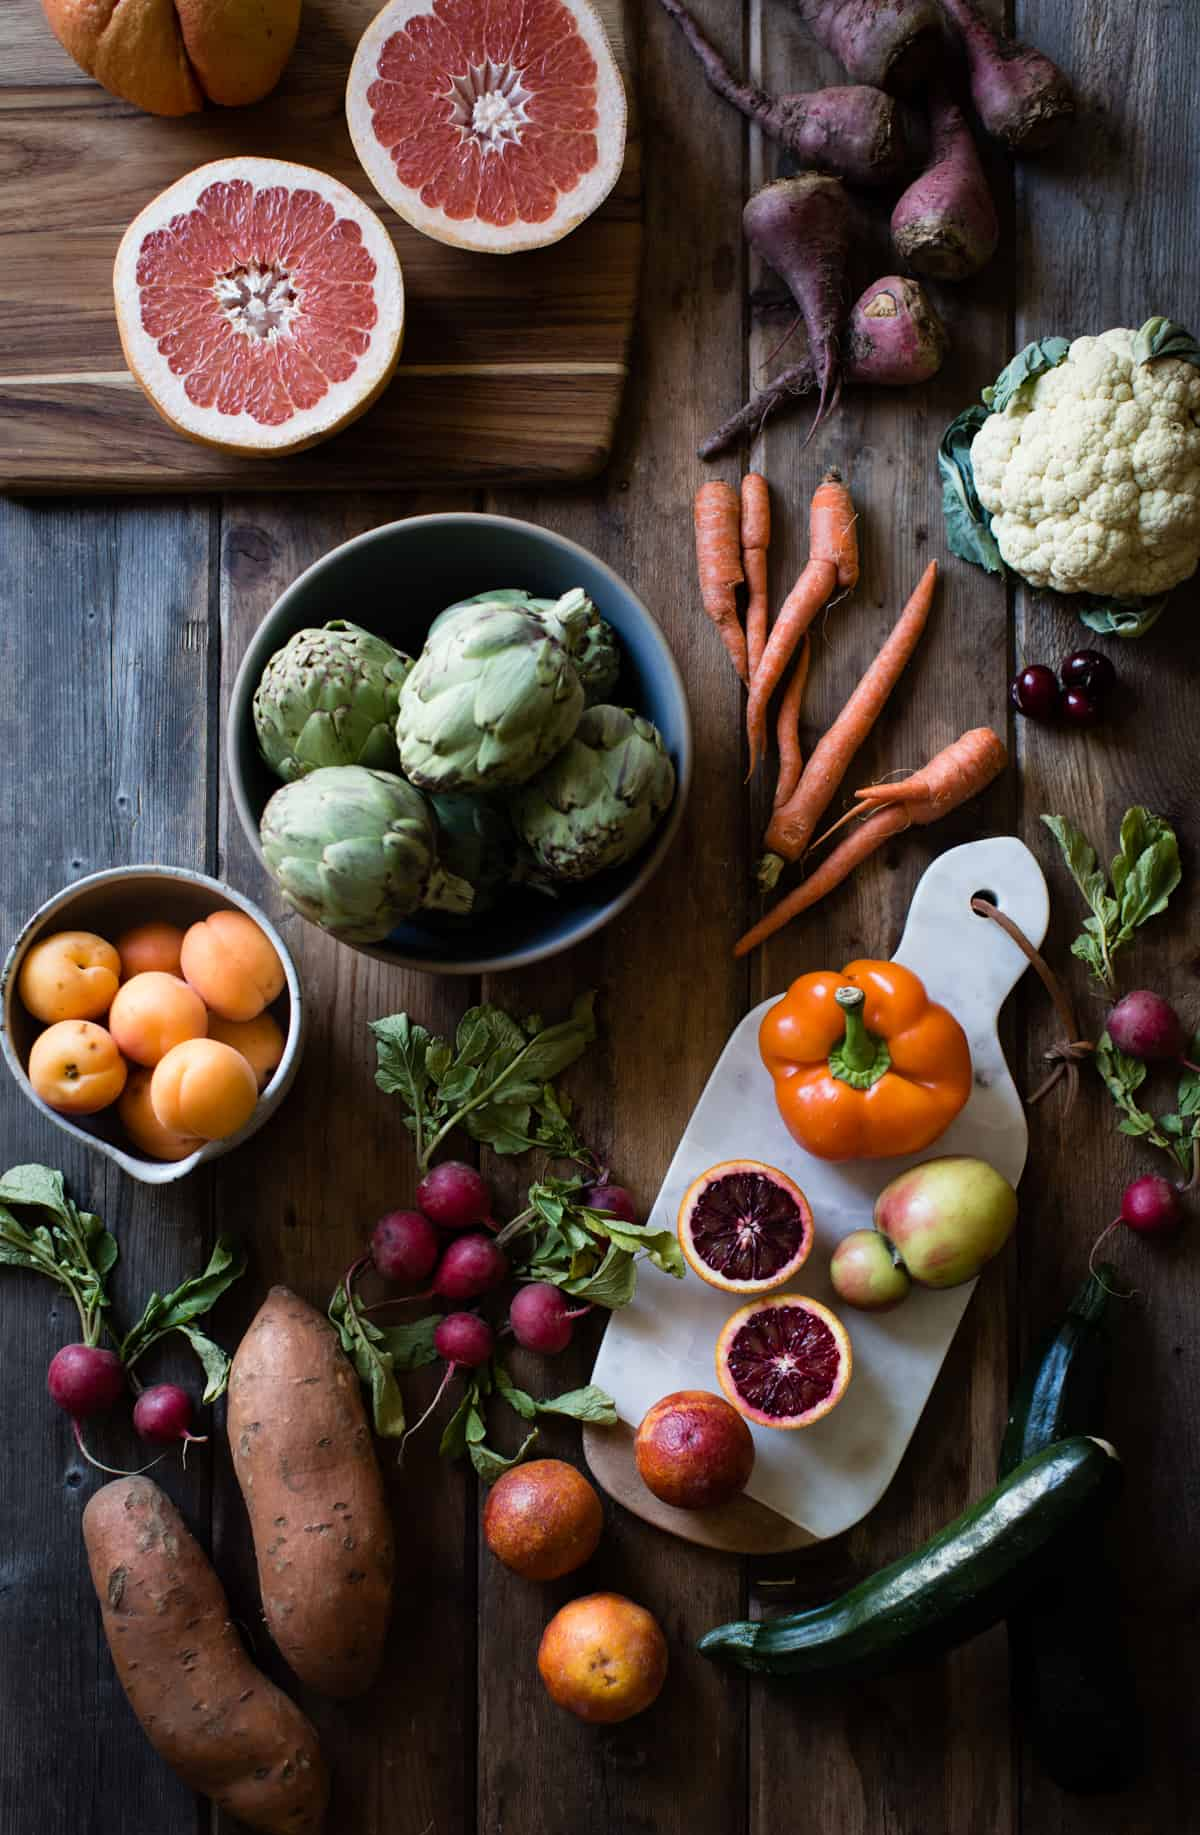 Imperfect Produce | The Bojon Gourmet